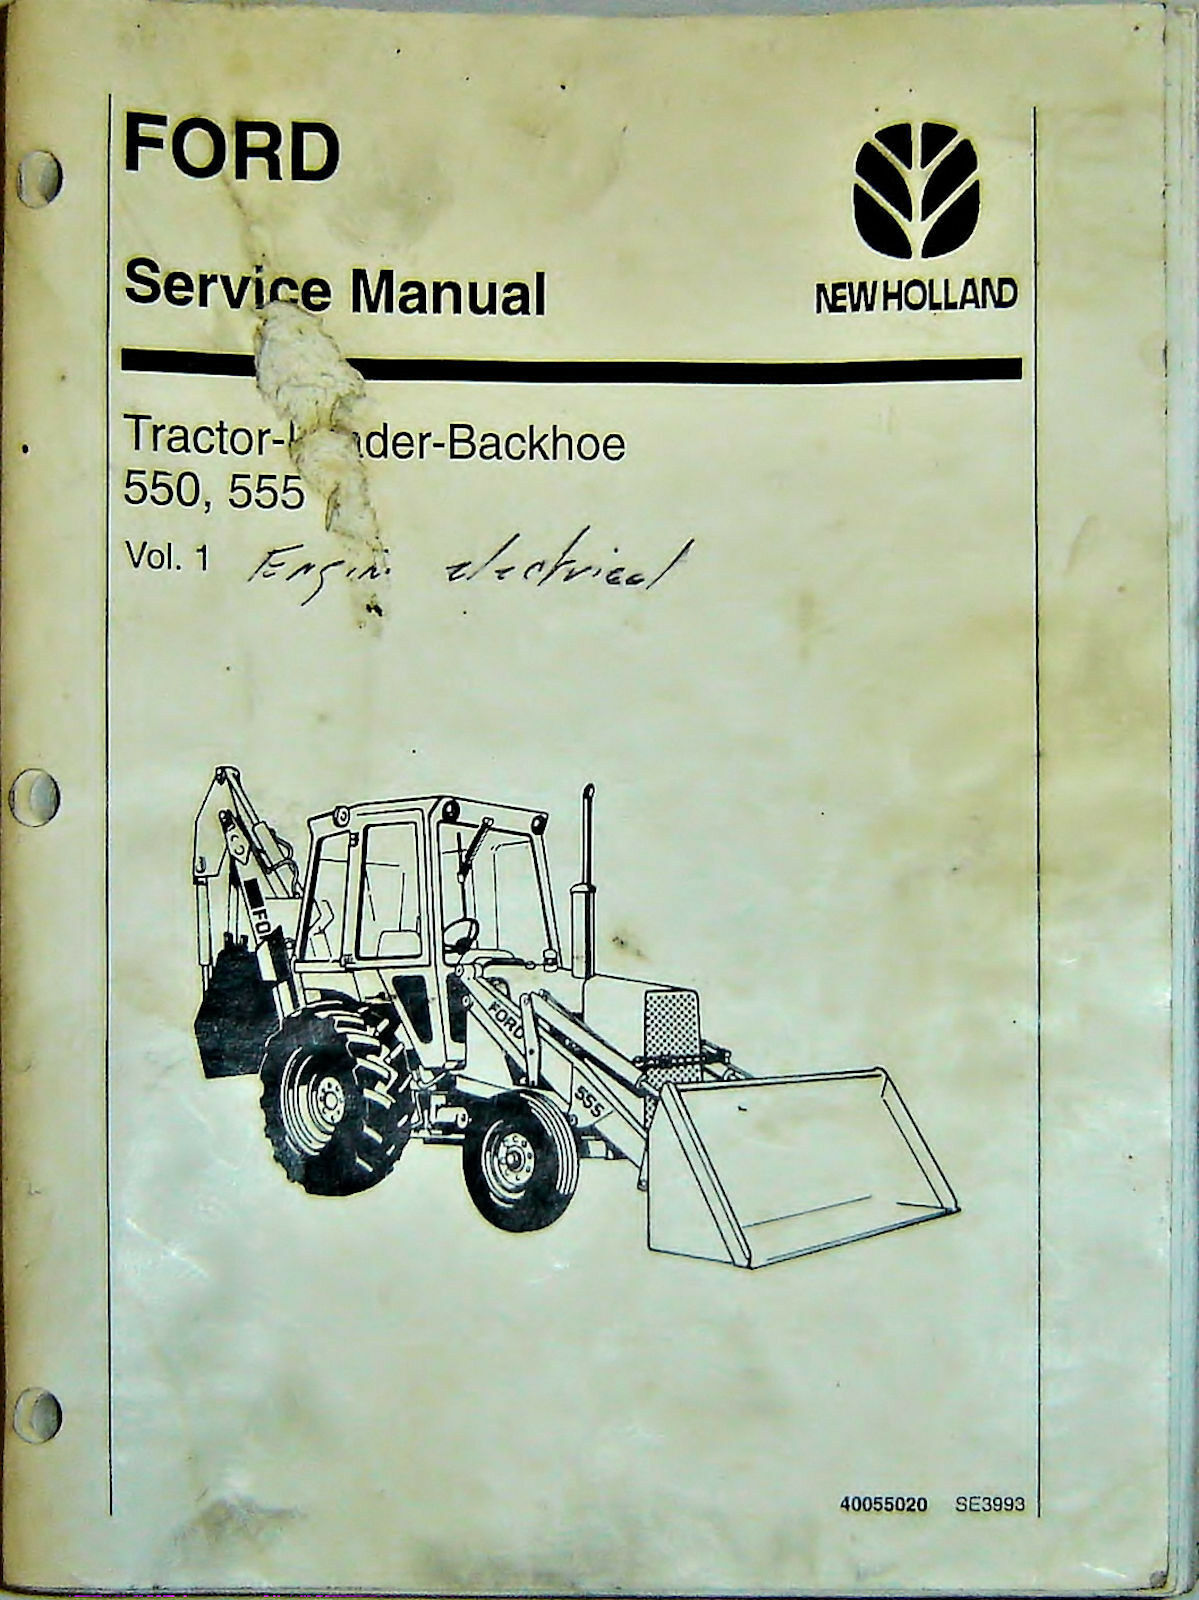 Ford New Holland 550 555 Tractor Loader Backhoe Service Manual Deere 1010 Parts Diagram In Addition John Dozer Track 1 Of 1only Available